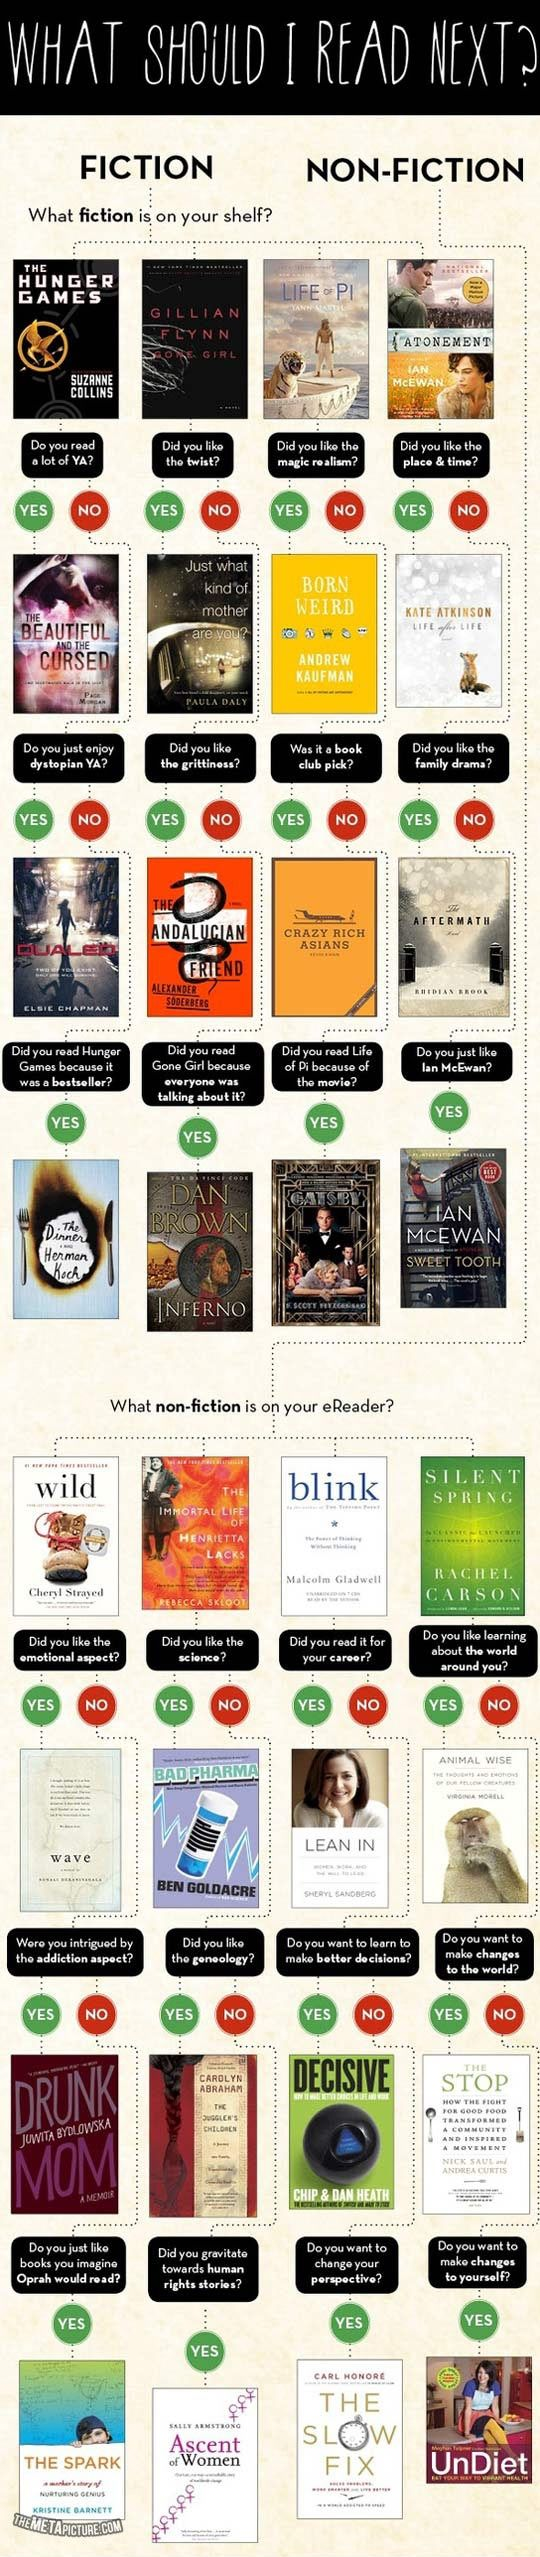 What should I read next?  I love how this makes the assumption that those who prefer fiction keep their books on a shelf, and those who prefer non-fiction use an e-reader lol.